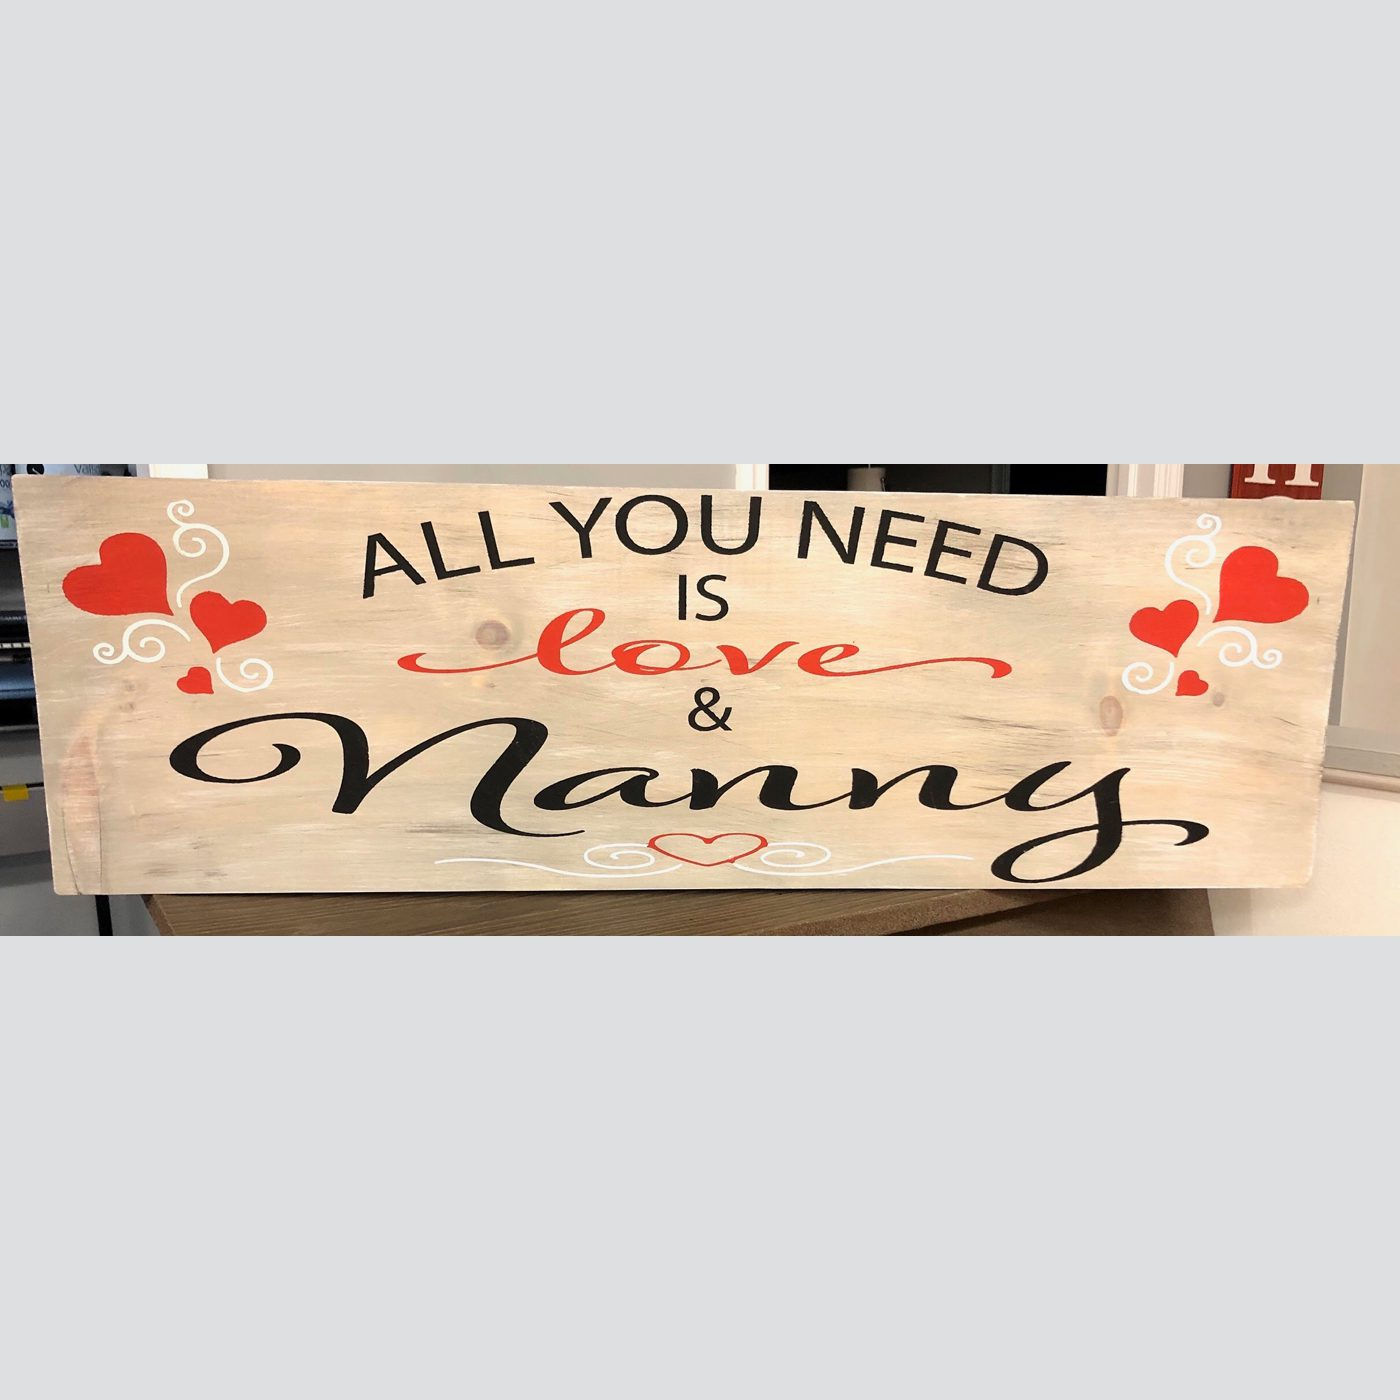 All You Need is Love and Nanny DIY Wood Sign